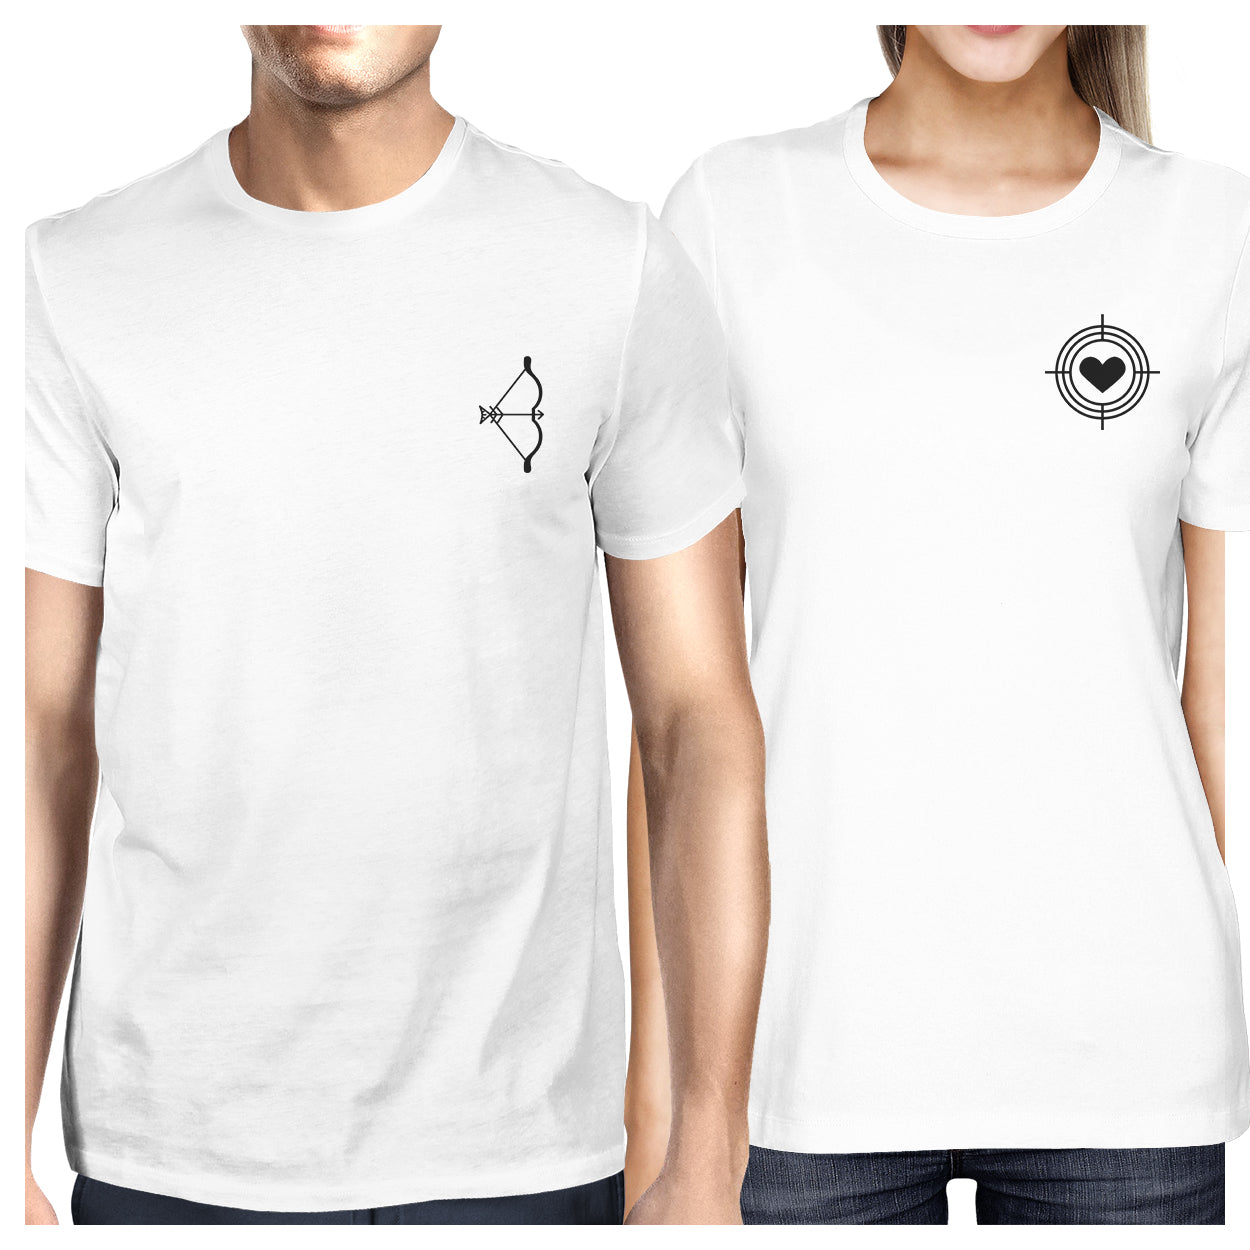 b53fdaa740747 Bow And Arrow To Heart Target Matching Couple White Shirts - 365 IN ...